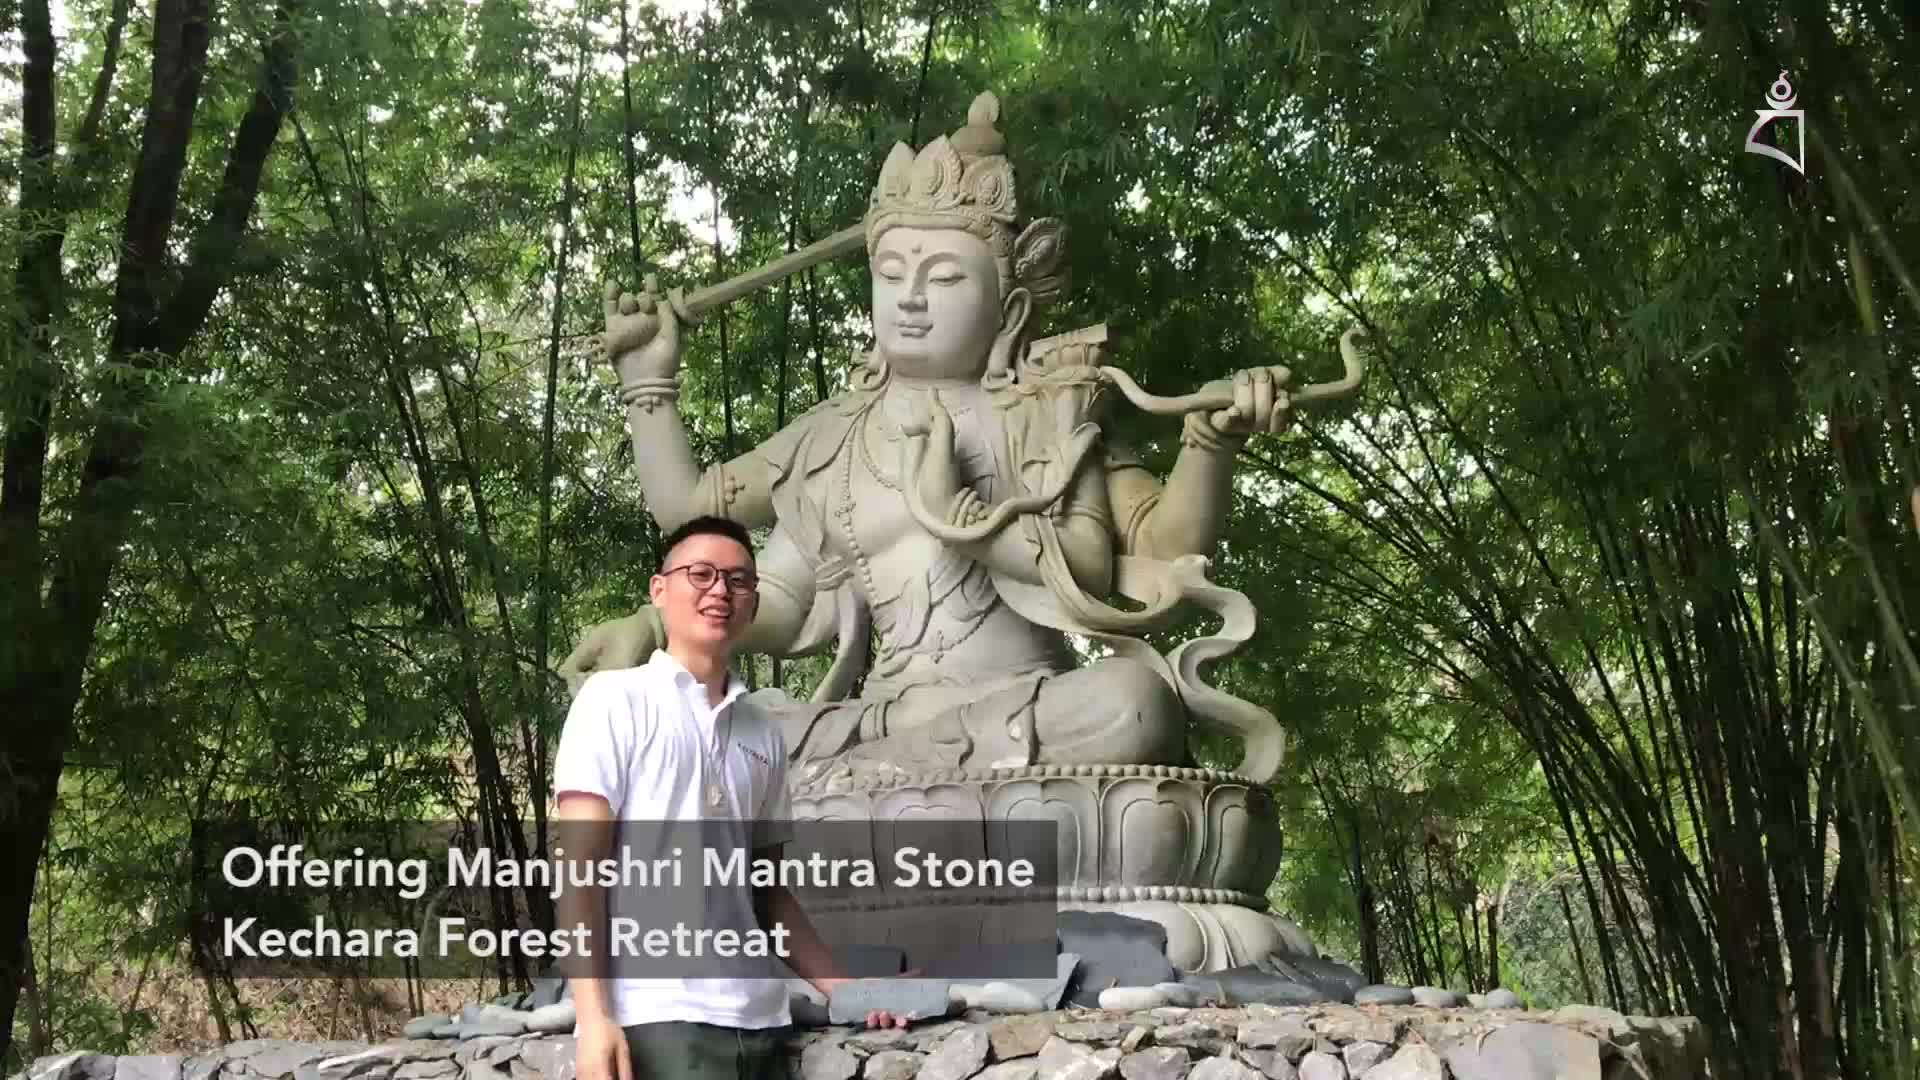 Wylfred explains in Chinese the benefits of mantra stones at Kechara Forest Retreat-Malaysia   |  黄明川以华语解释在马来西亚克切拉禅修林的玛尼堆(刻有心咒的石头)的利益